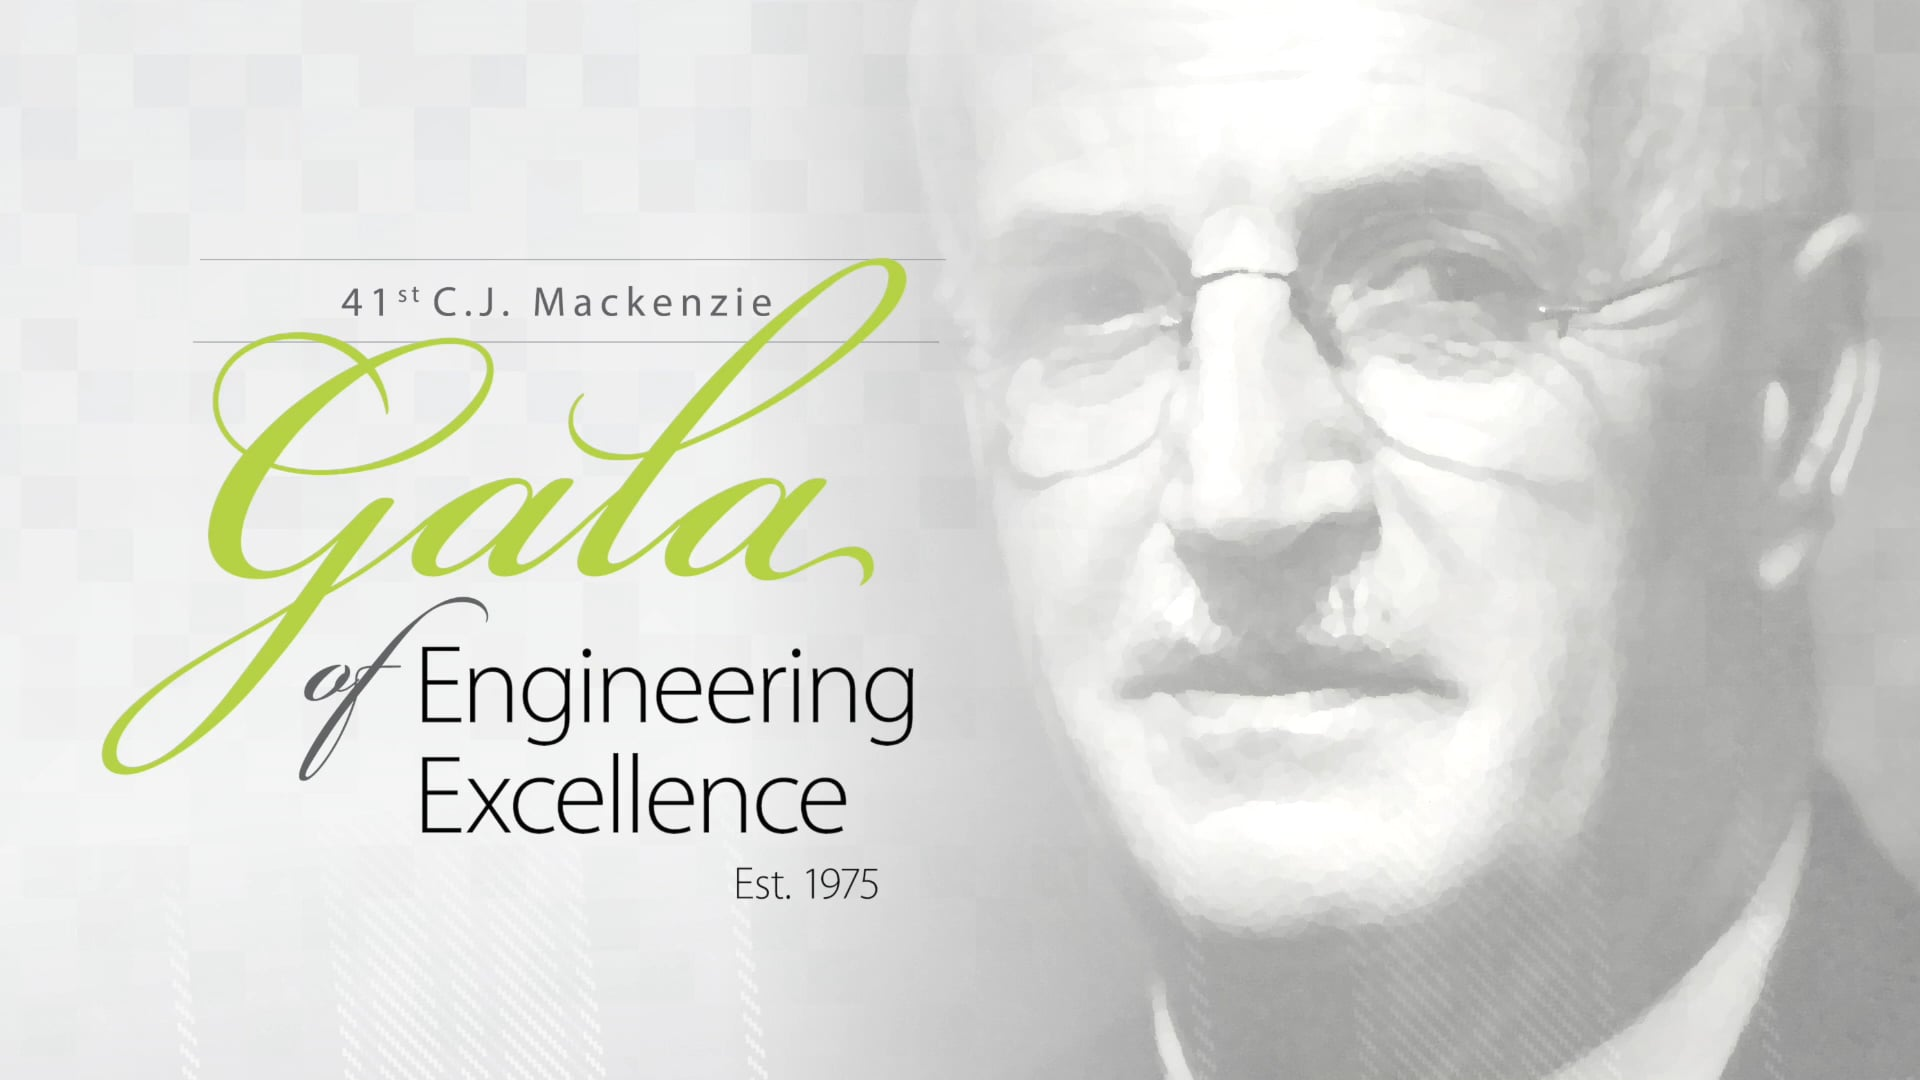 Video thumbnail for C.J. MACKENZIE GALA